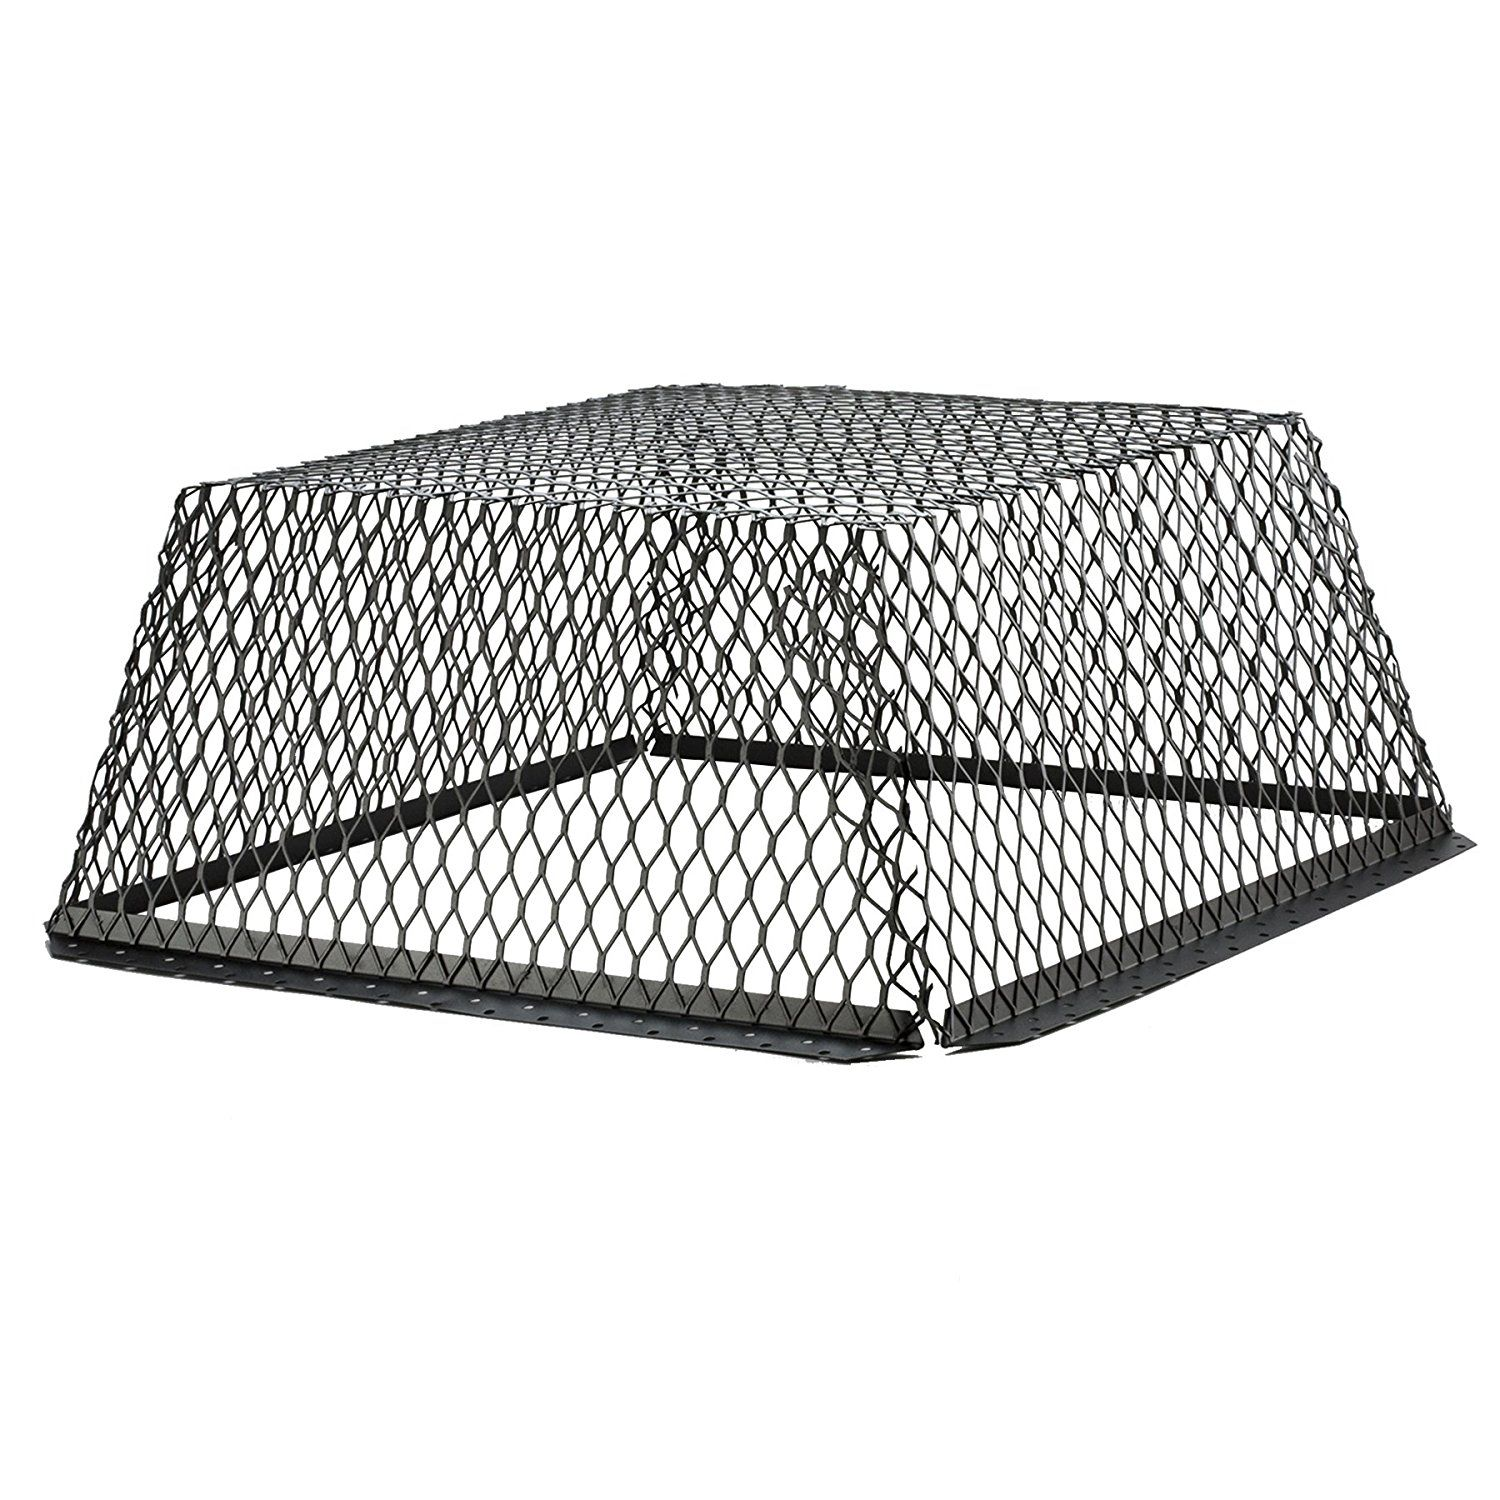 Hy C Rvg3030g Galvanized Black Roof Ventguard With Wildlife Exclusion Screen 30 X 30 X 12 Find Out More Abou Roof Corrugated Roofing Sheet Metal Roofing